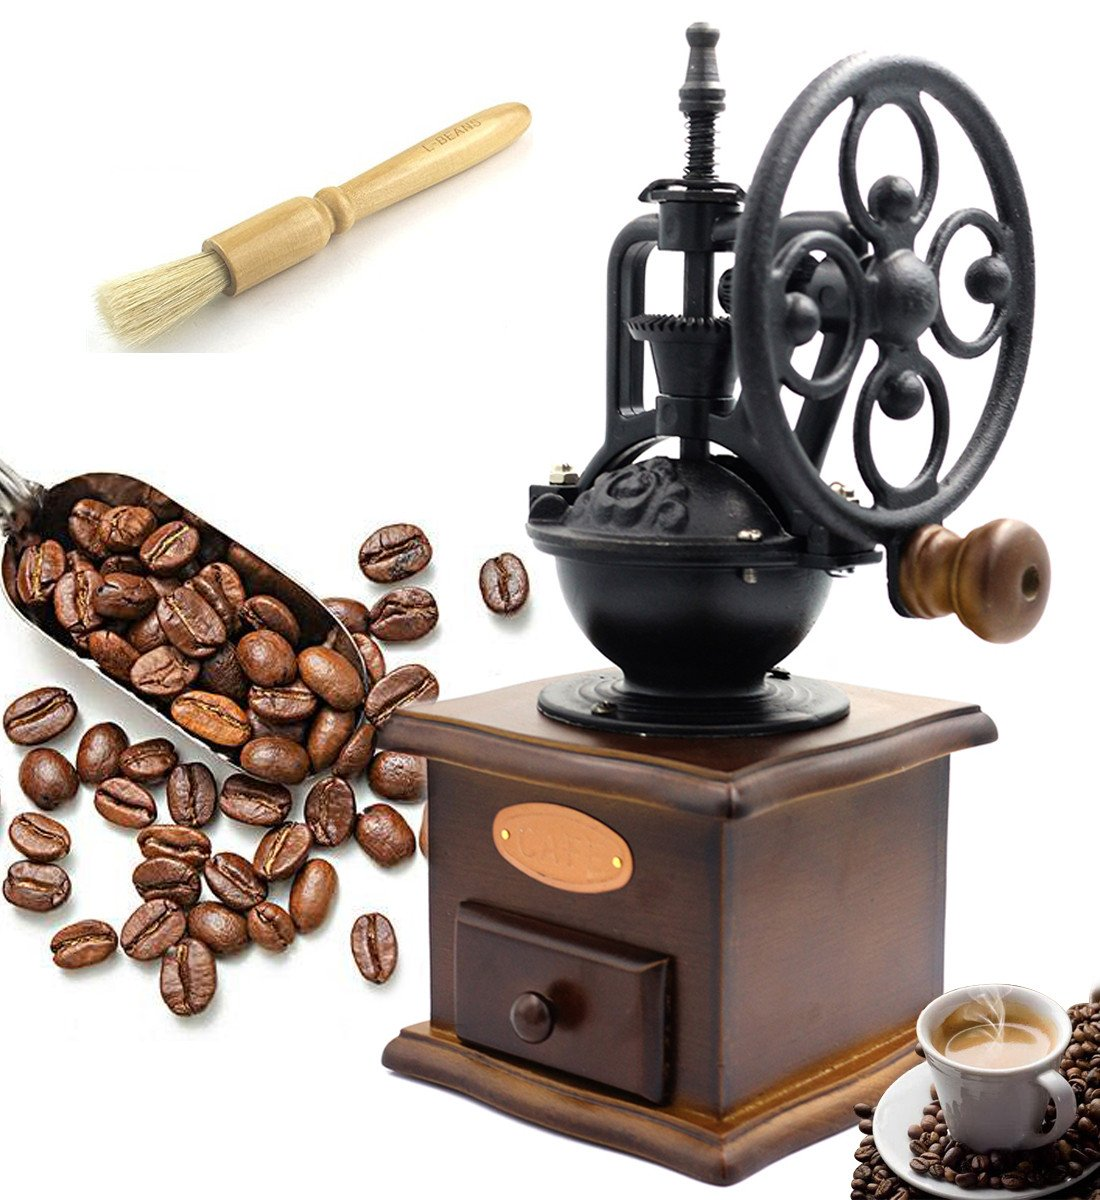 Fecihor Manual Coffee Grinder With Grind Settings and Catch Drawer - Classic Vintage Style Manual Hand Grinder Coffee Mill by Fecihor